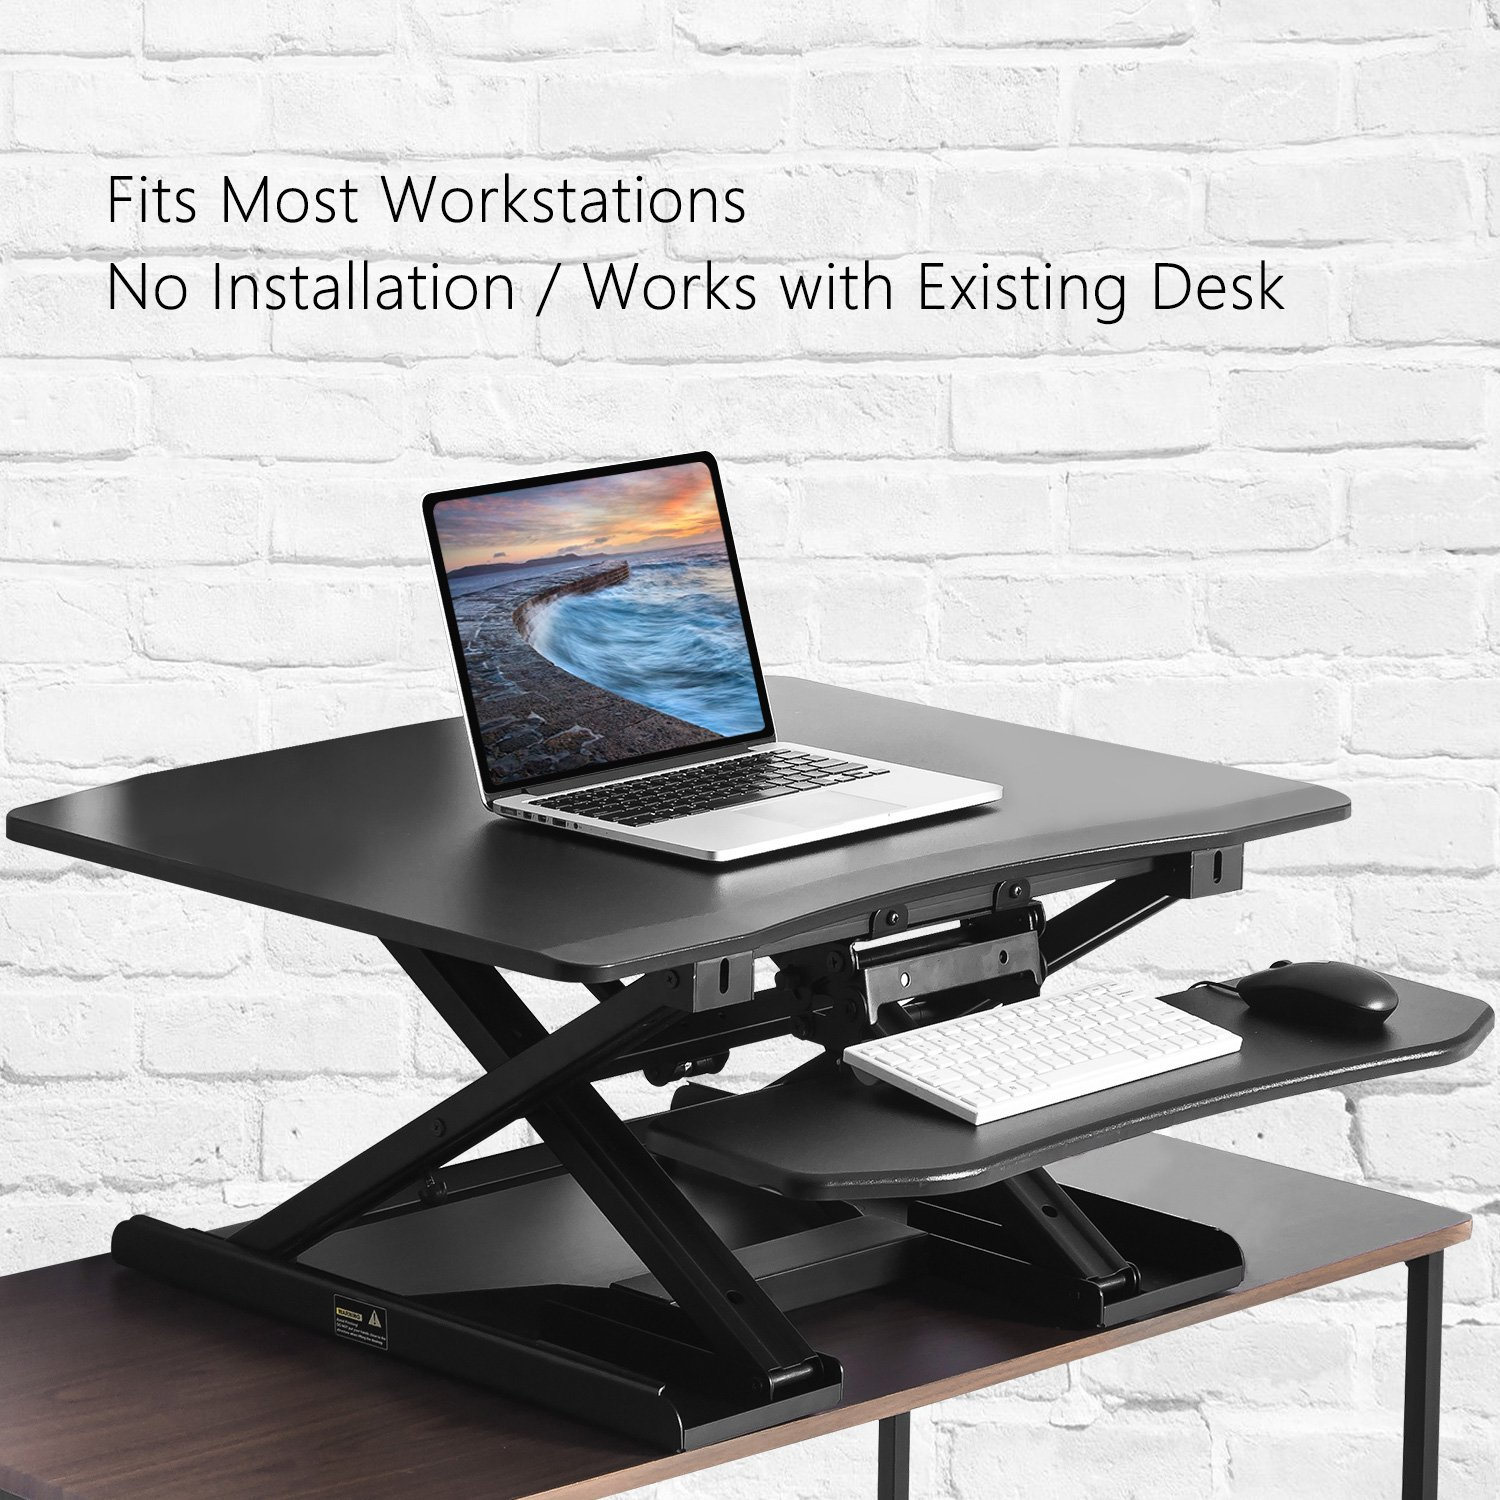 Modern Luxe Adjustable Sit-Stand Desk Height Adjustable Standing Desk Black Elevating Desktop Workstation